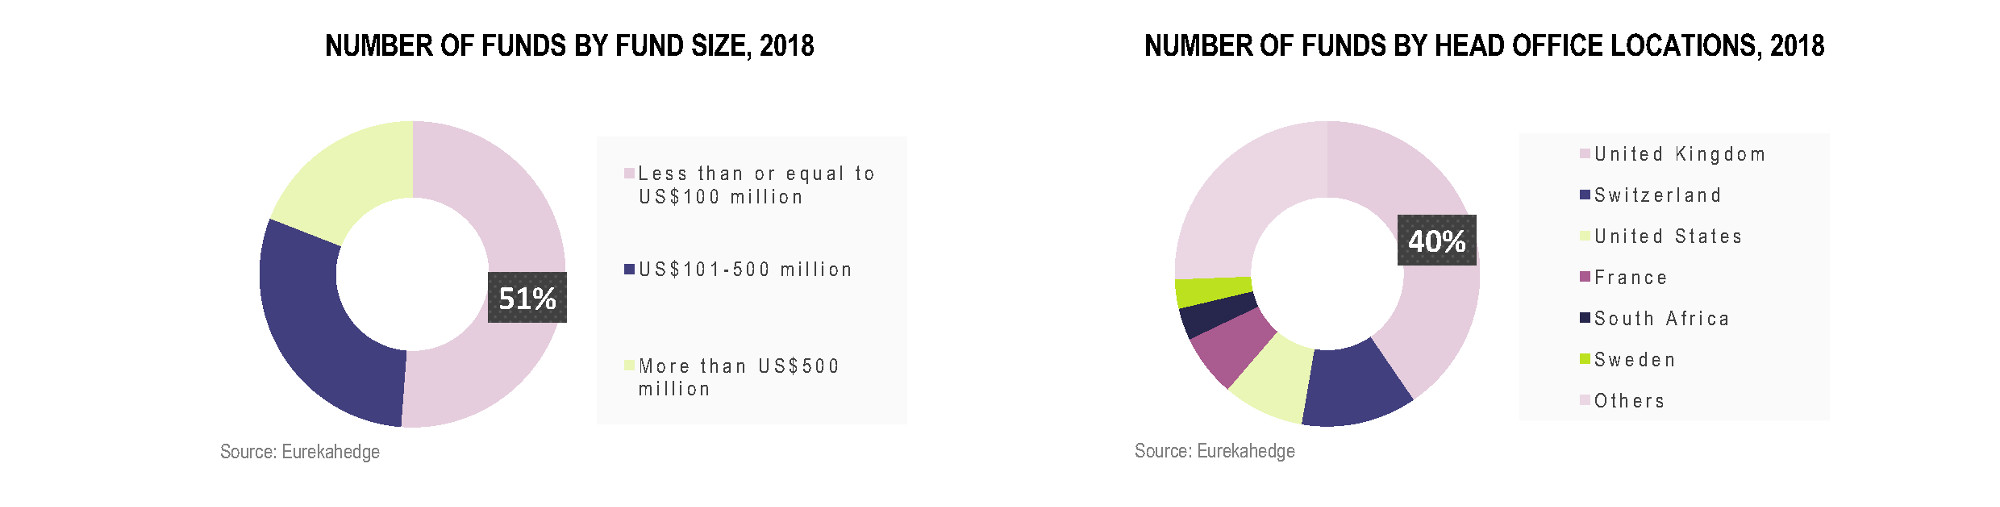 European Hedge Funds Infographic July 2018 - number of funds by fund size, number of funds by head office locations